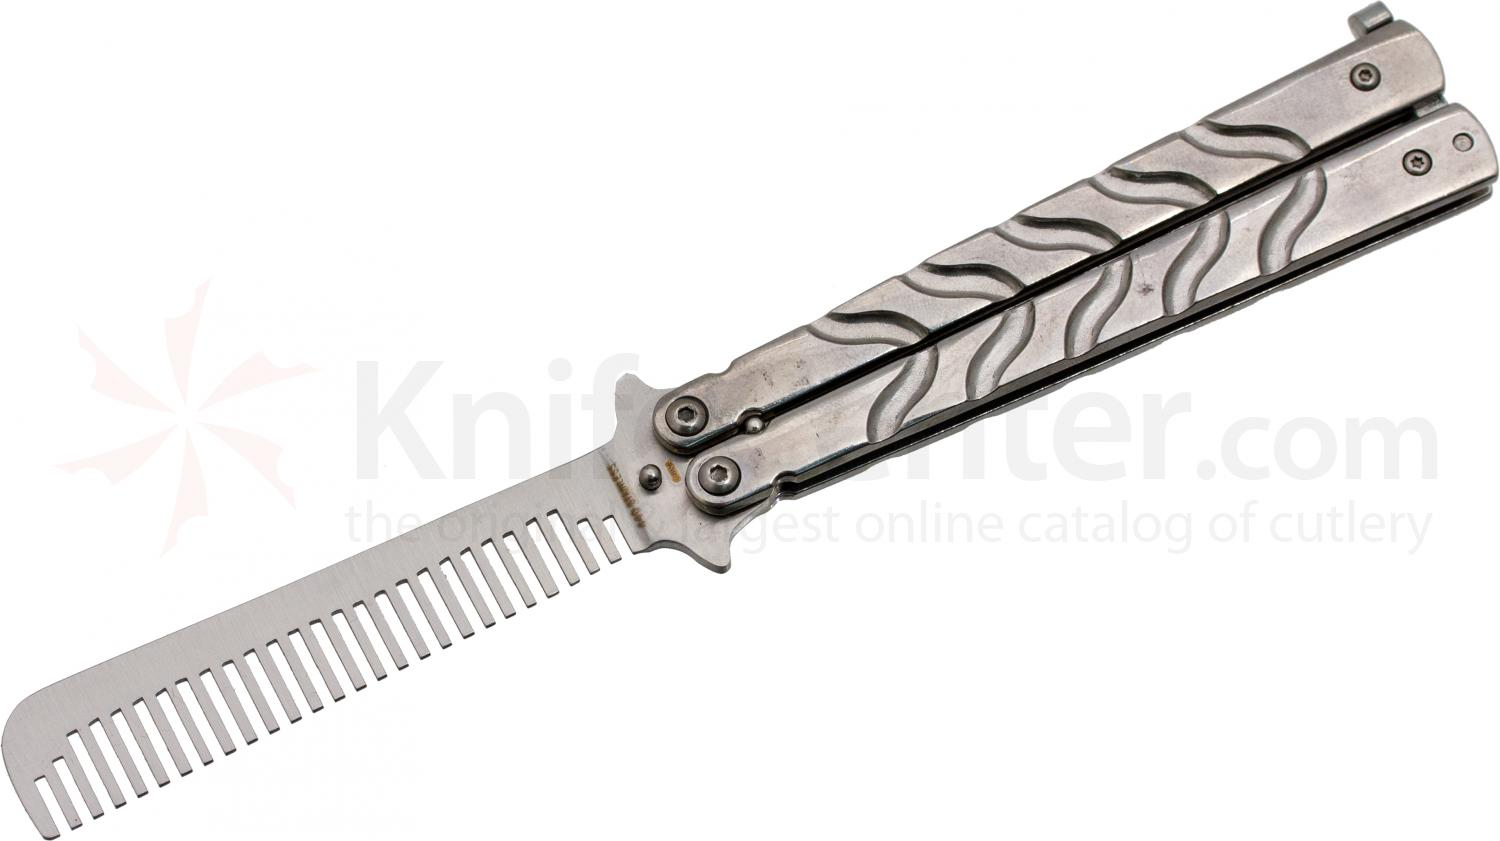 Ronin Gear Balisong Butterfly Comb Trainer, 5 inch Closed, Silver